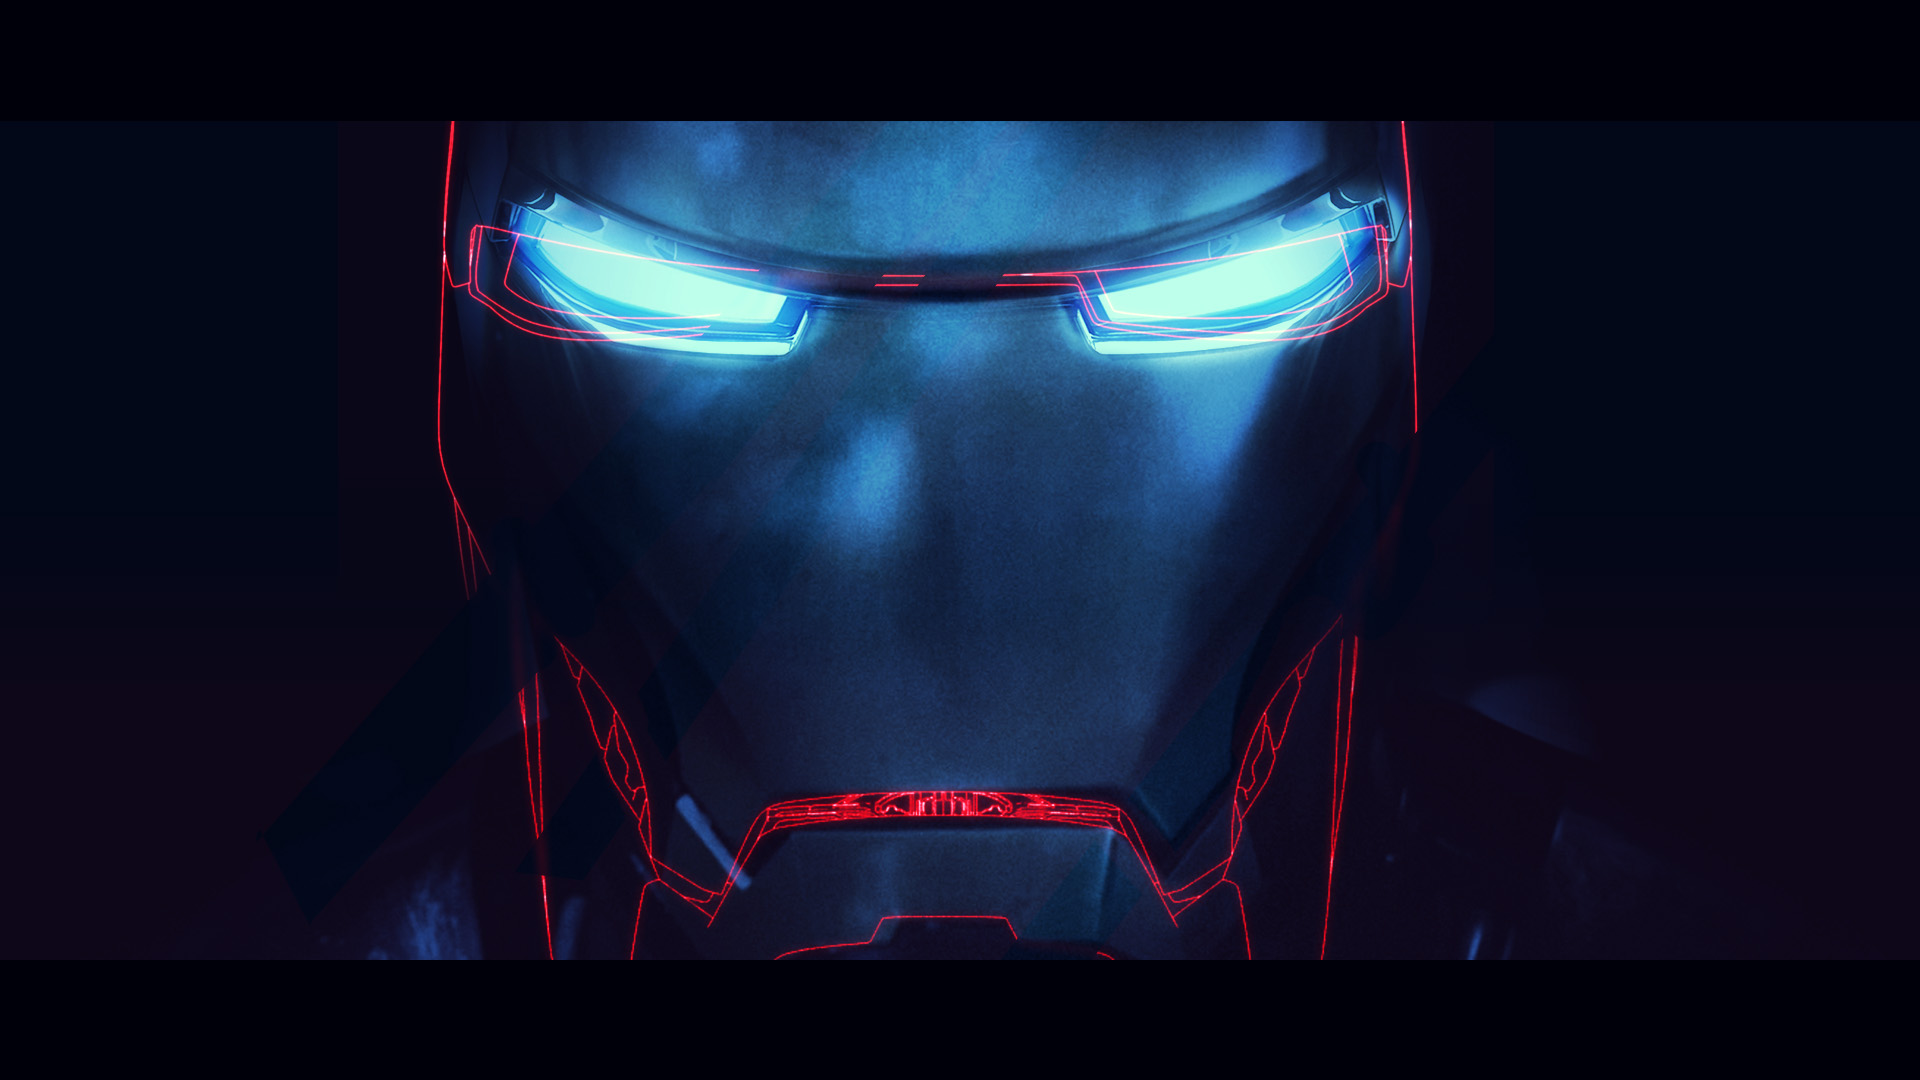 Iron Man 3 Computer Wallpapers Desktop Backgrounds 1920x1080 ID 1920x1080